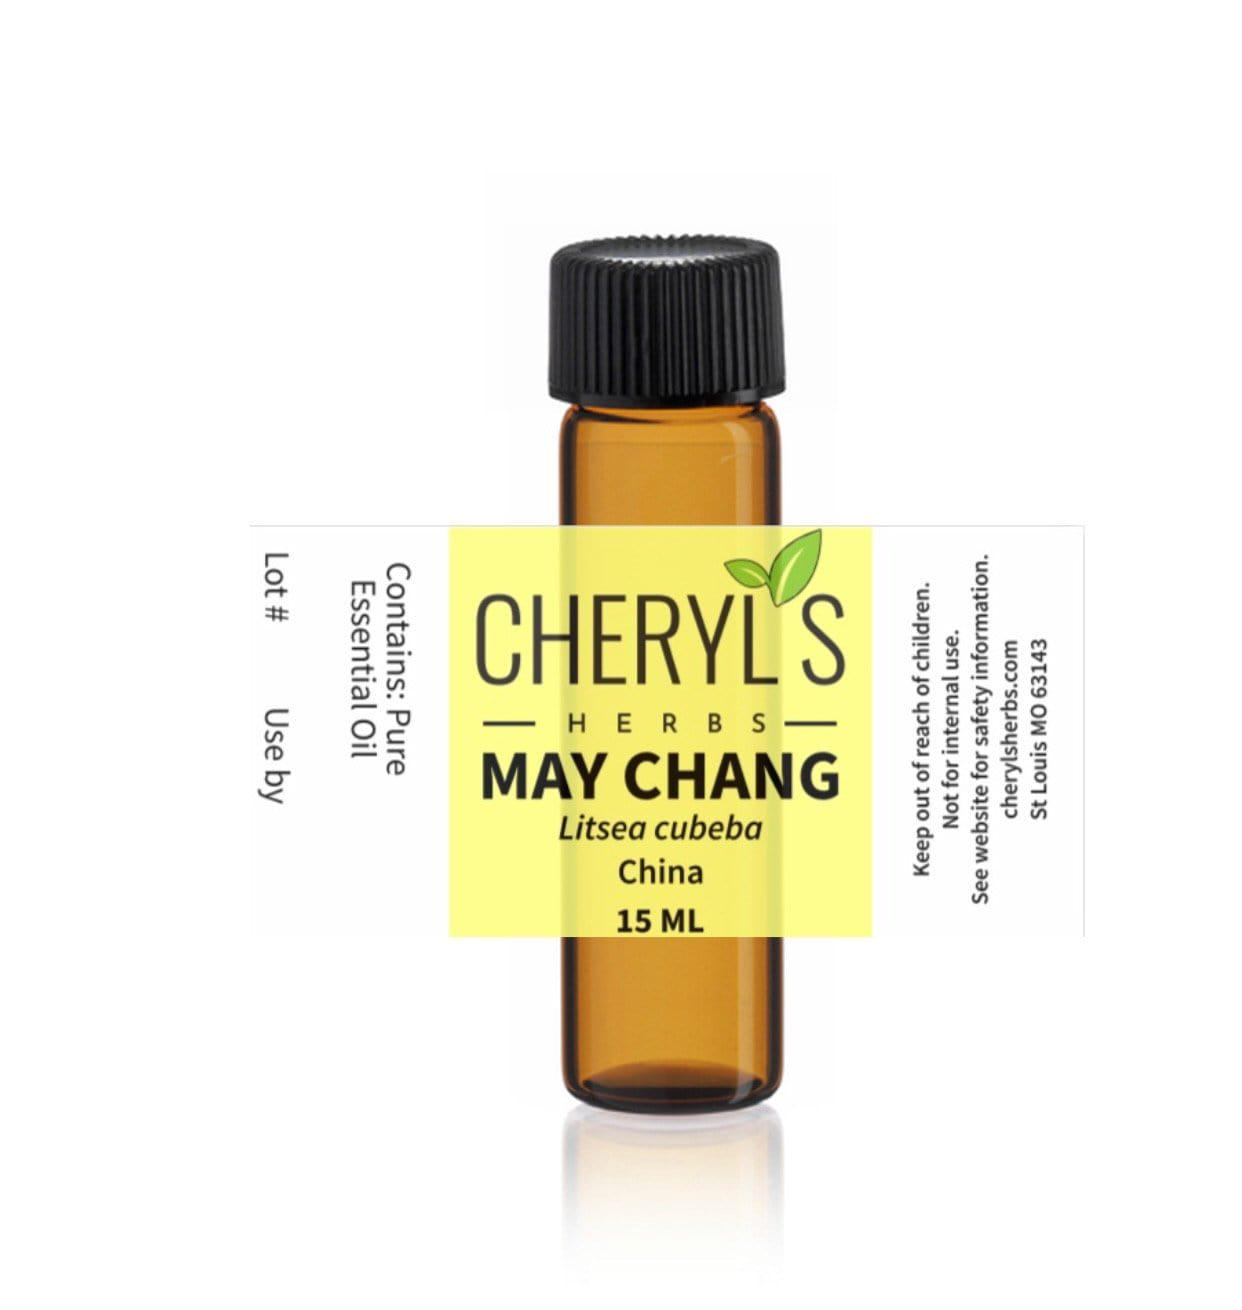 MAY CHANG ESSENTIAL OIL - Cheryls Herbs